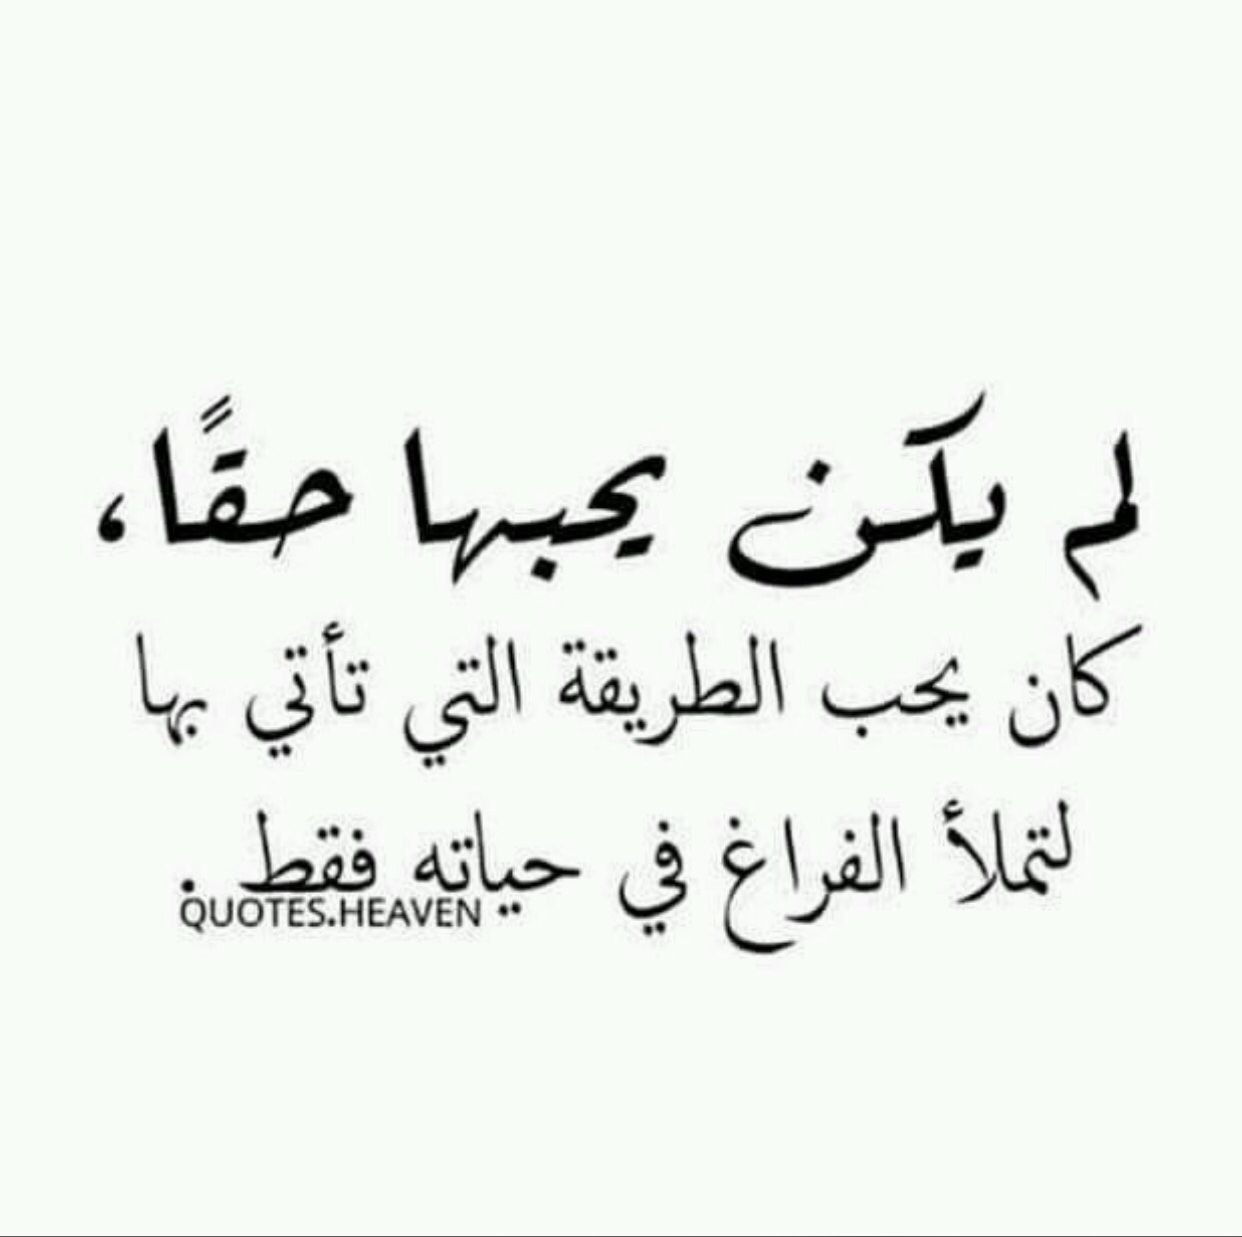 Pin By Sally On قالوا كلمات Words Quotes Funny Arabic Quotes True Quotes